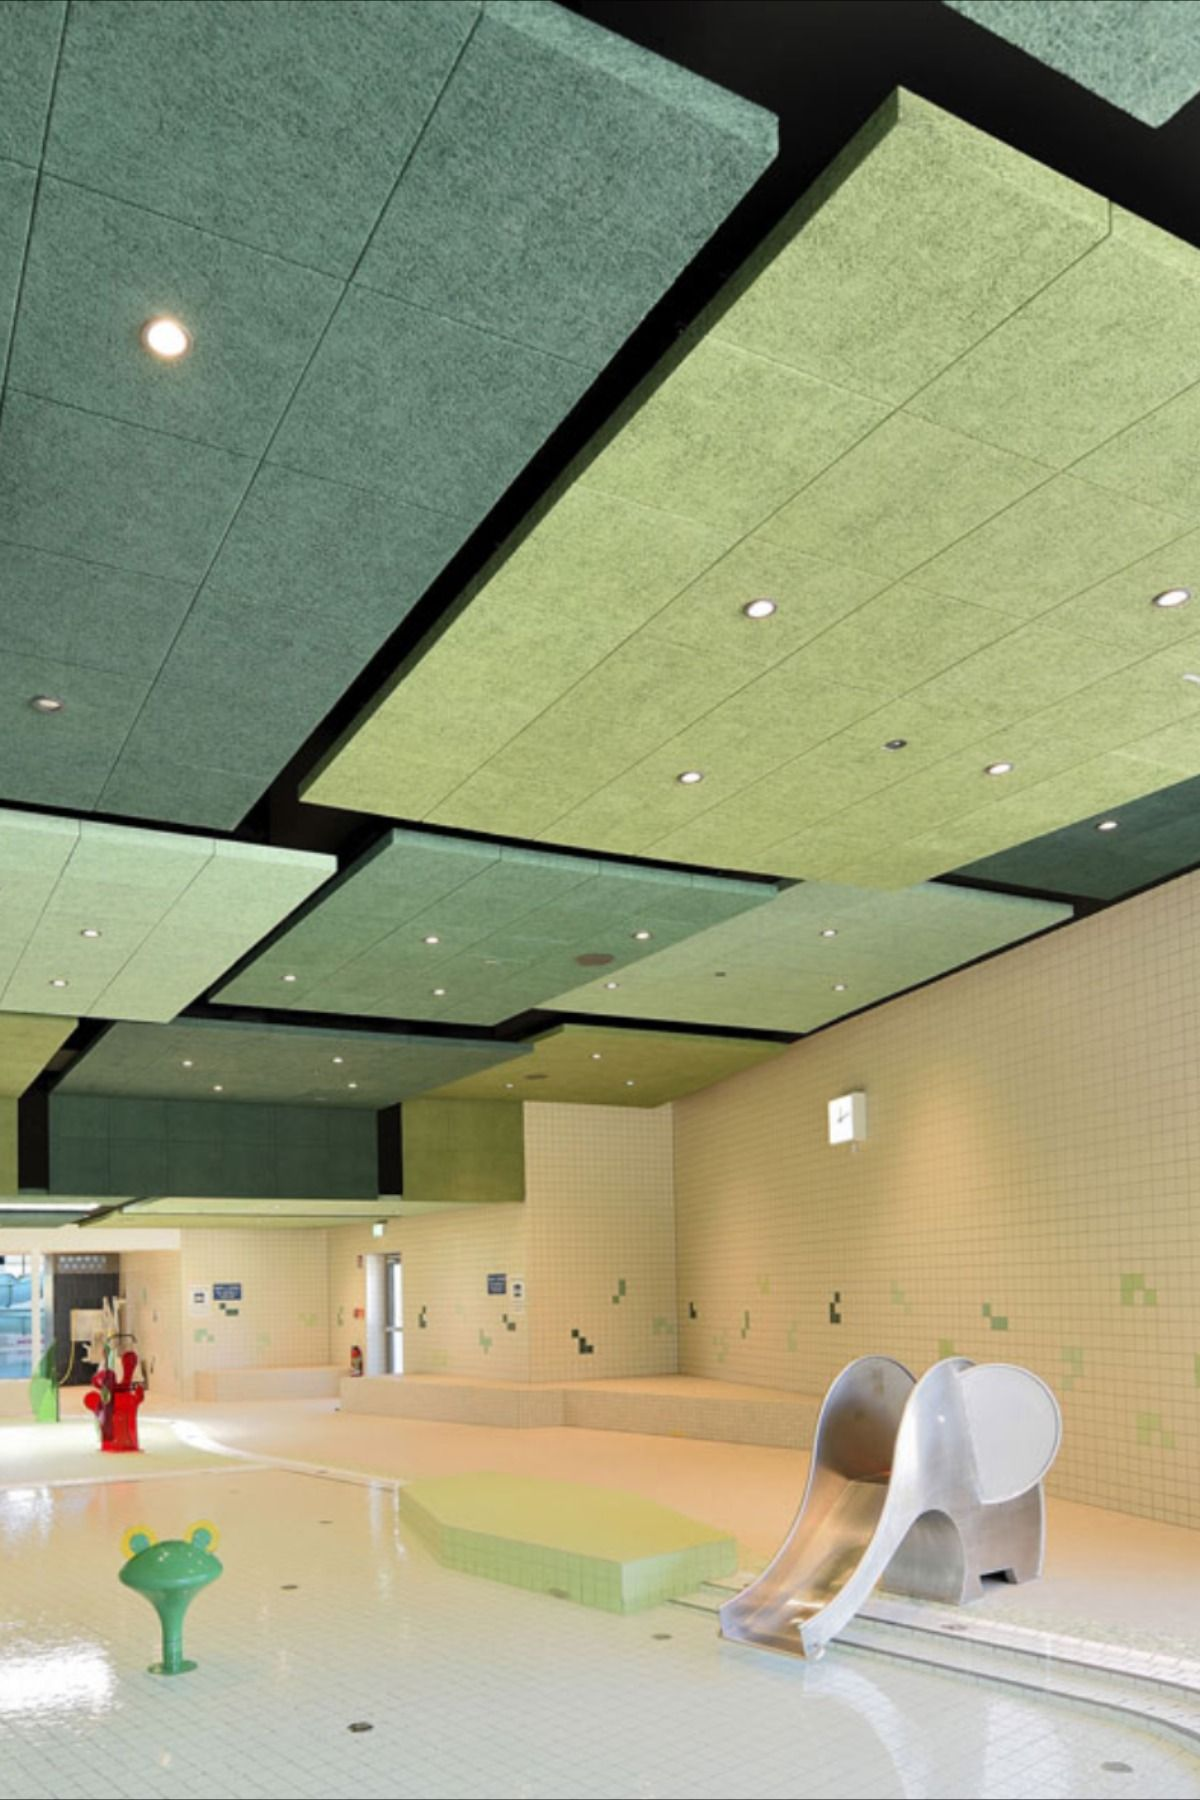 The Planners Of The Barbarossa Thermal Baths Have Managed To Combine Creative Finesse With Functionality And Su Room Acoustics Acoustics Design Acoustic Panels